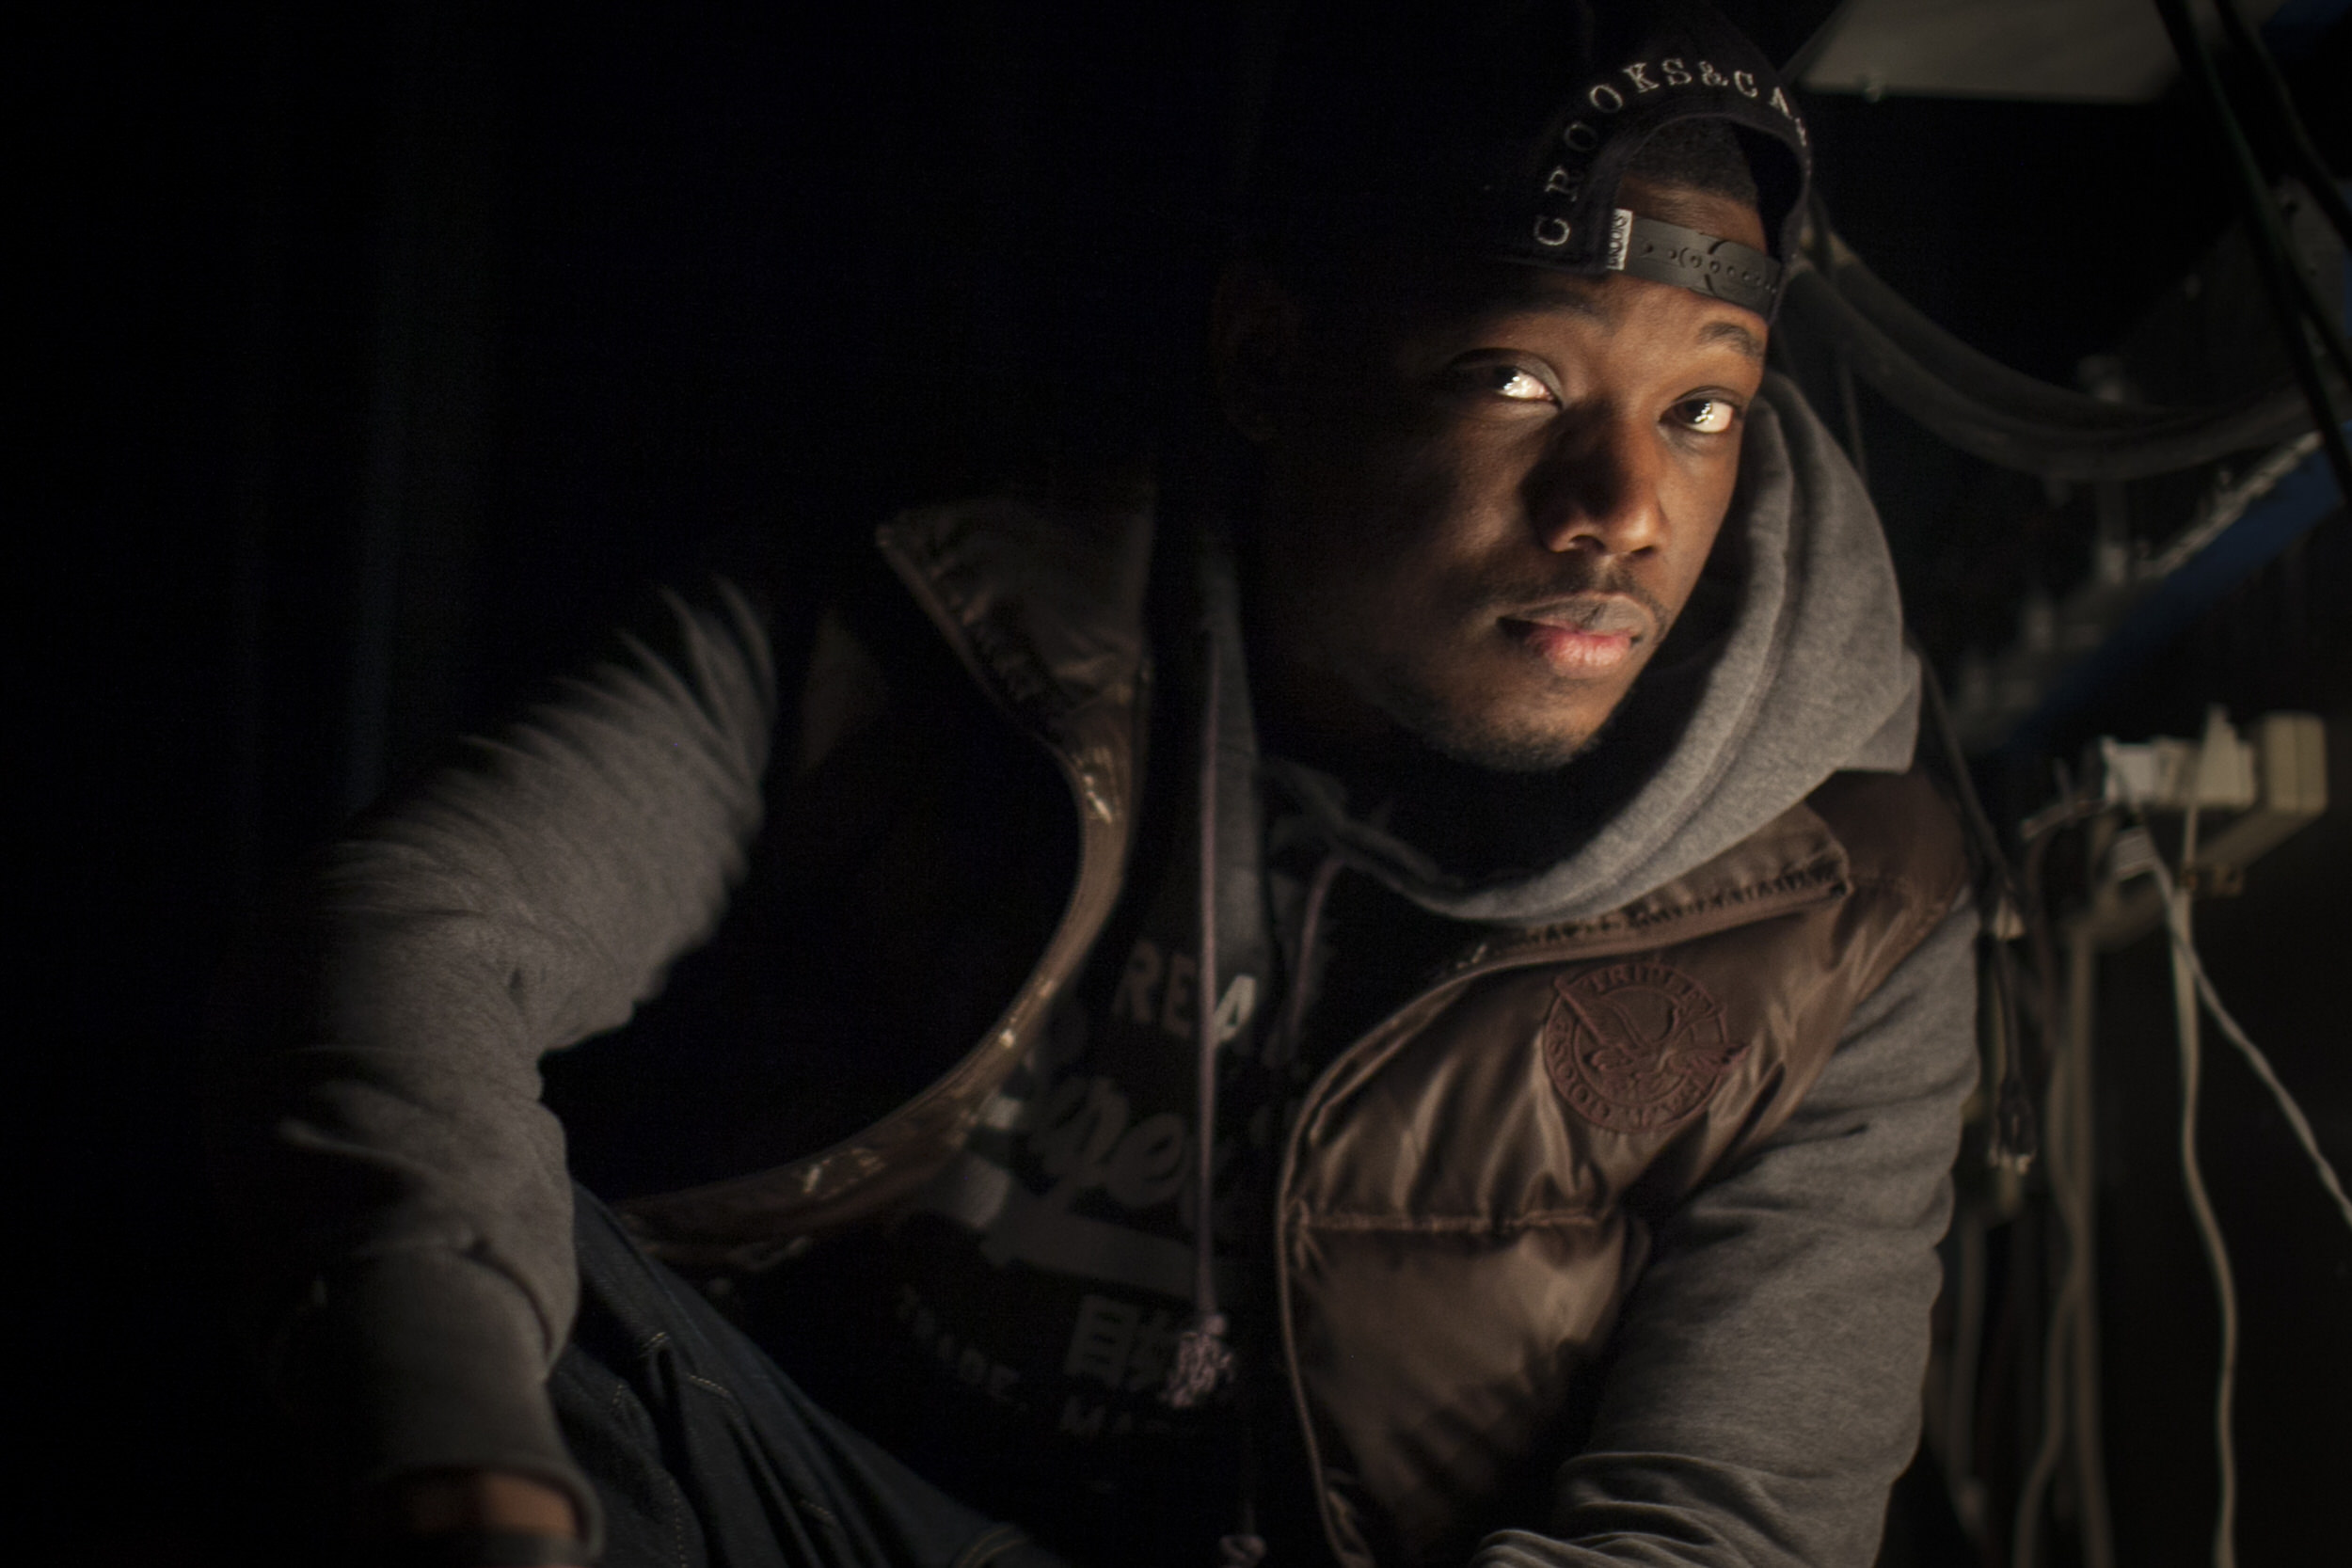 SNL Weekend Update Co-Anchor Michael Che backstage in Brooklyn.